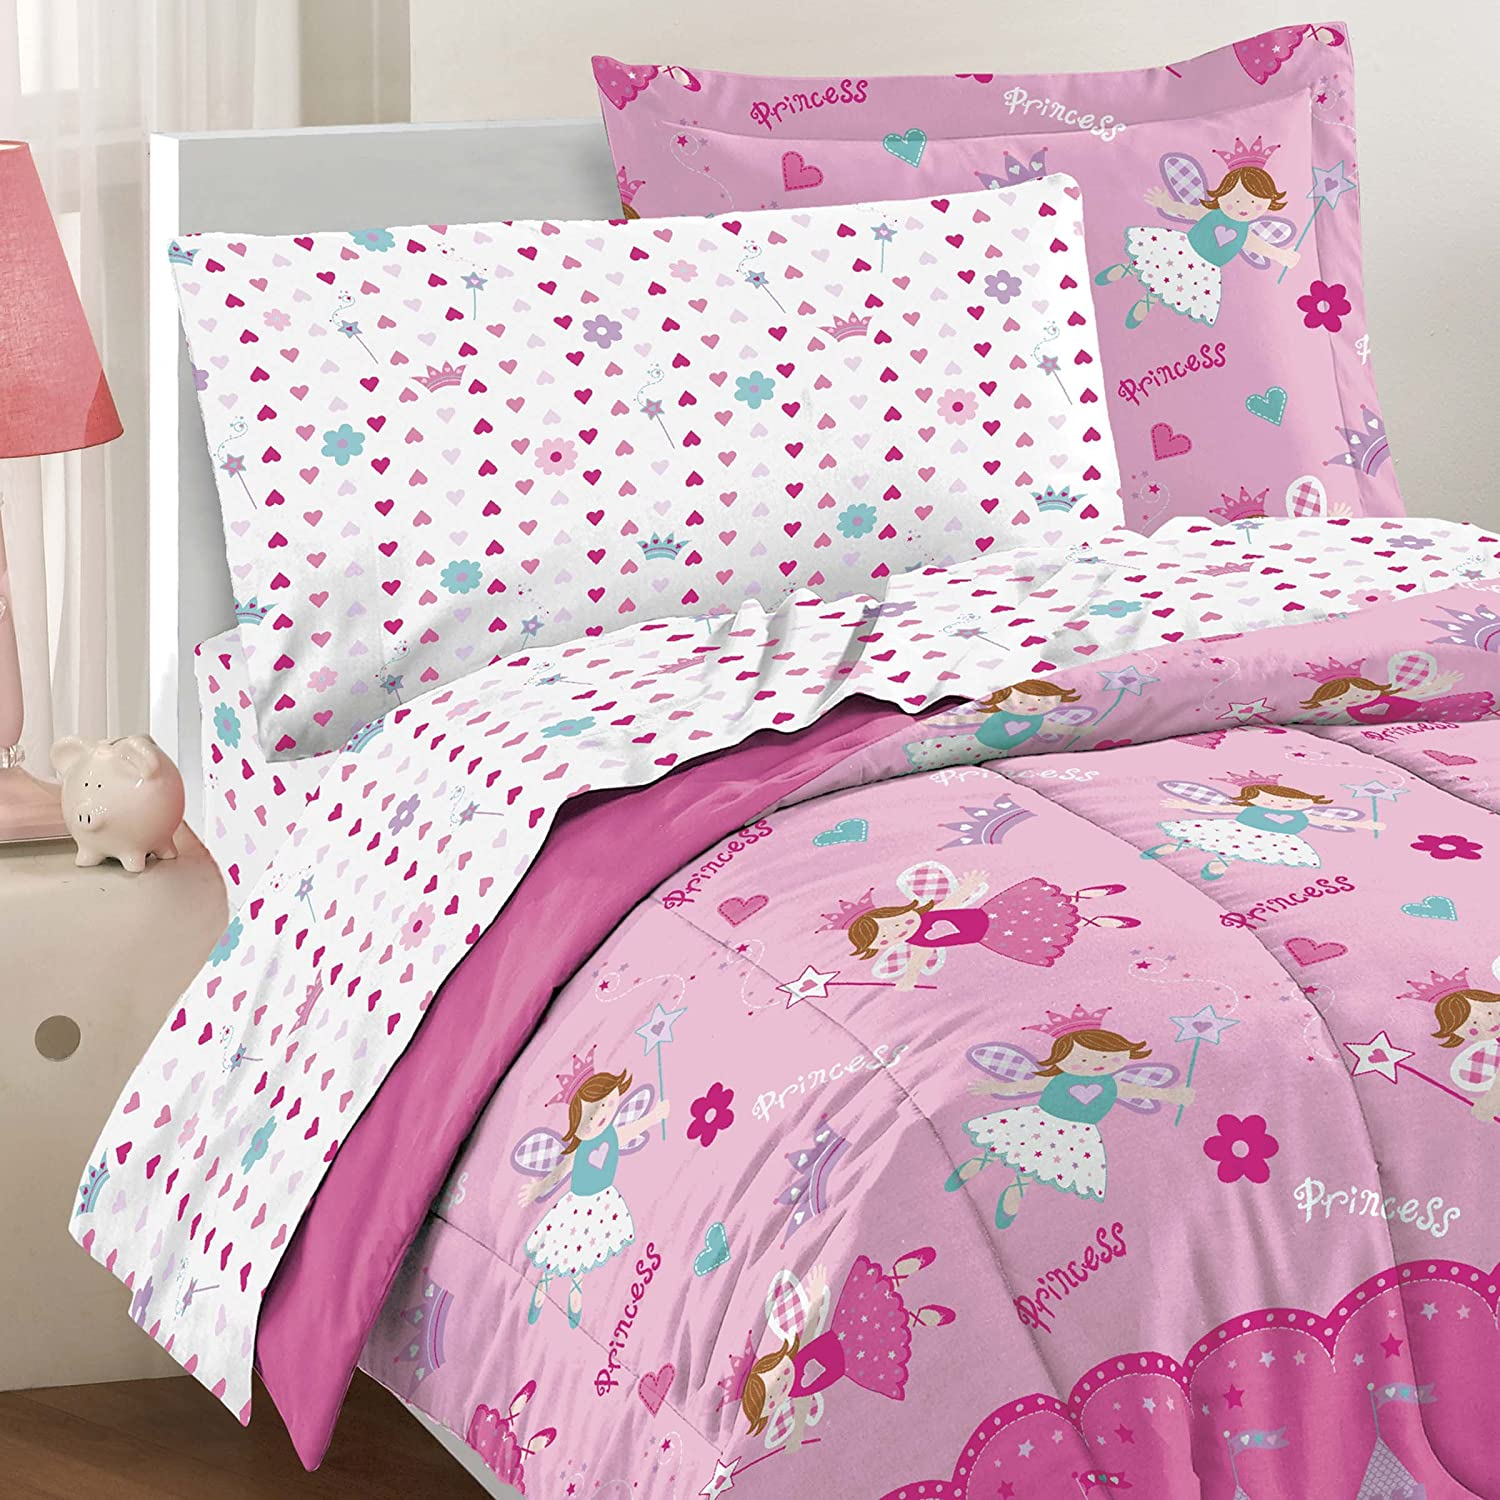 Design Princess Bedding amazon com dream factory magical princess ultra soft microfiber girls comforter set pink twin home kitchen